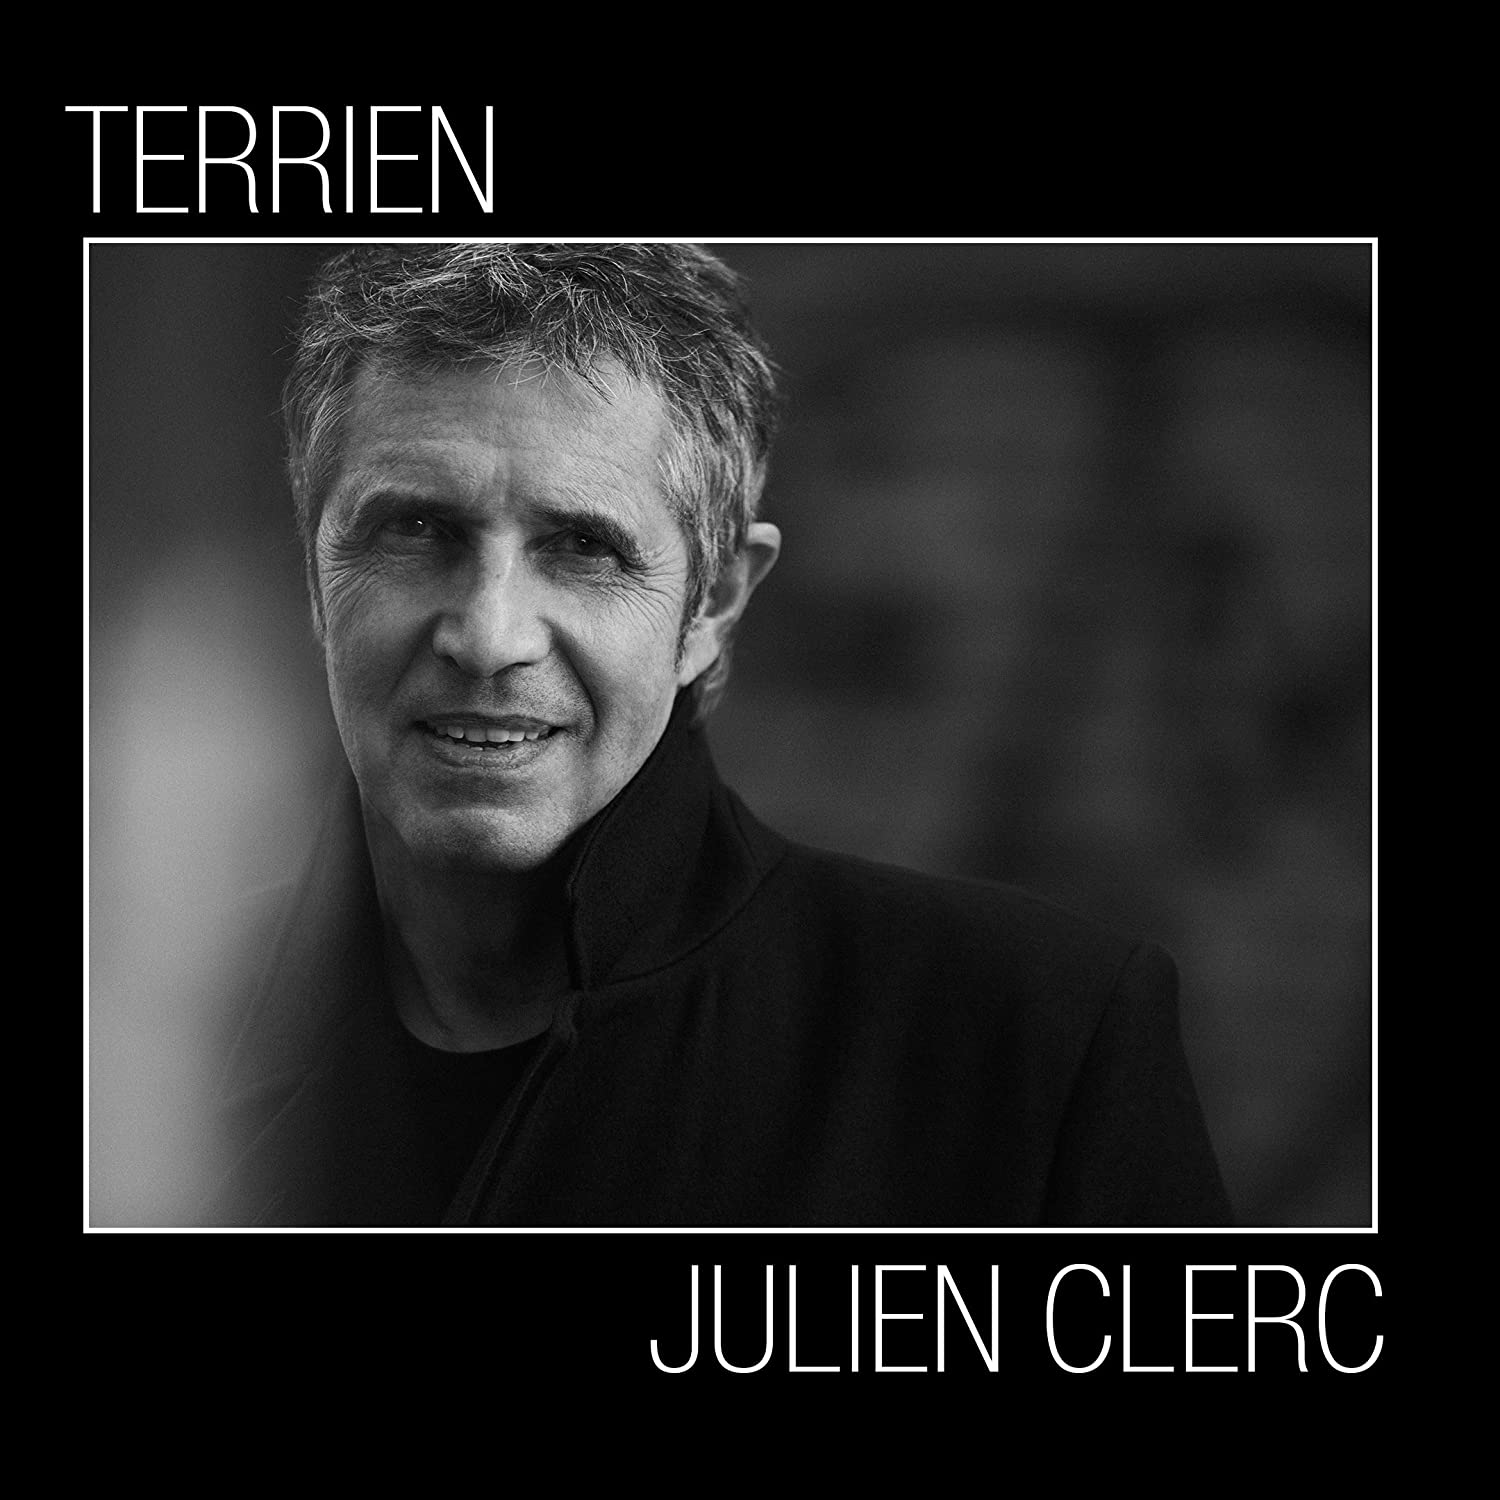 Terrien Julien Clerc, chant